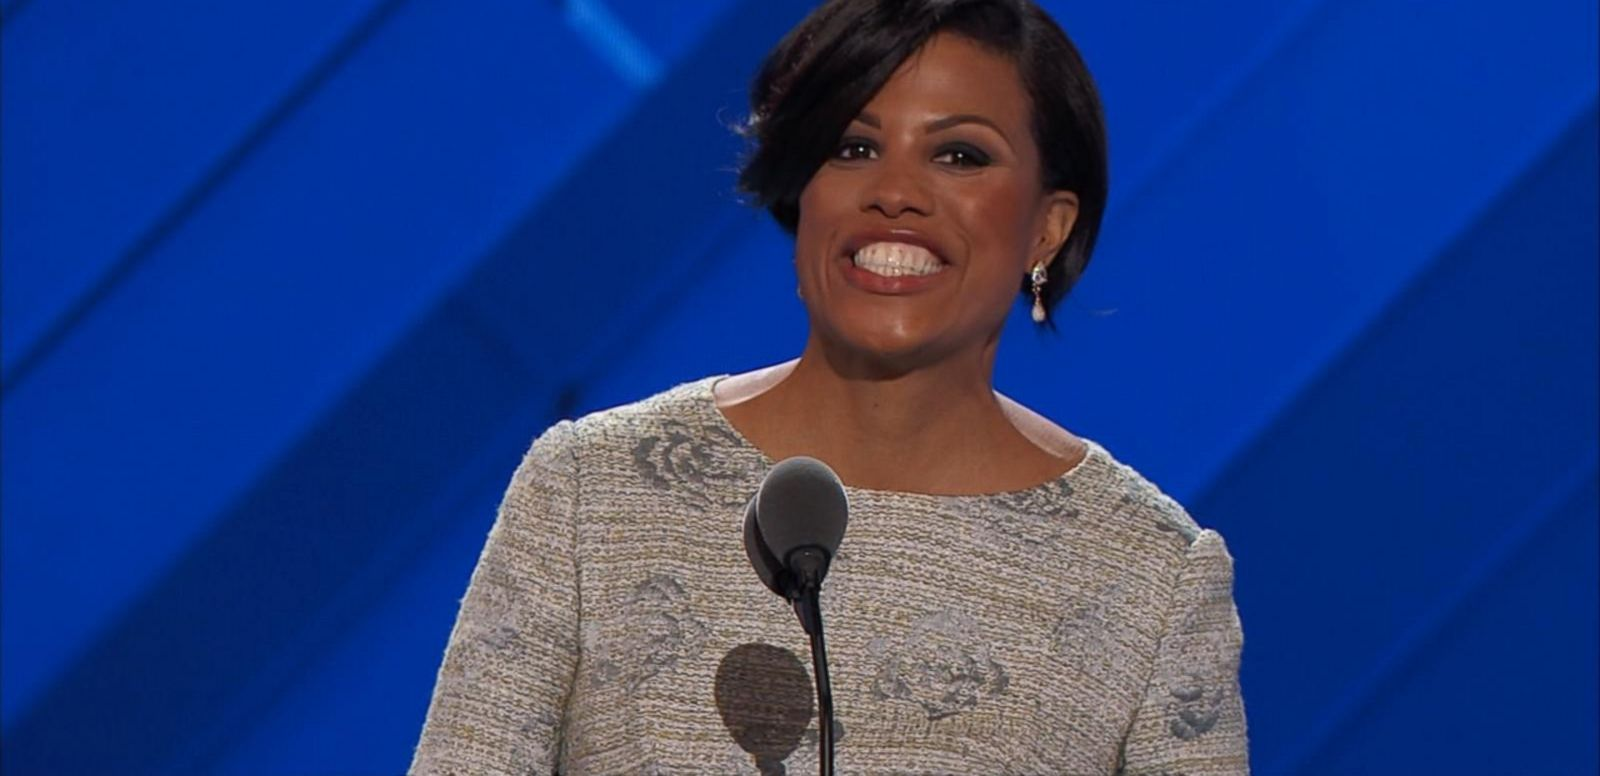 The mayor of Baltimore officially launched the convention instead.